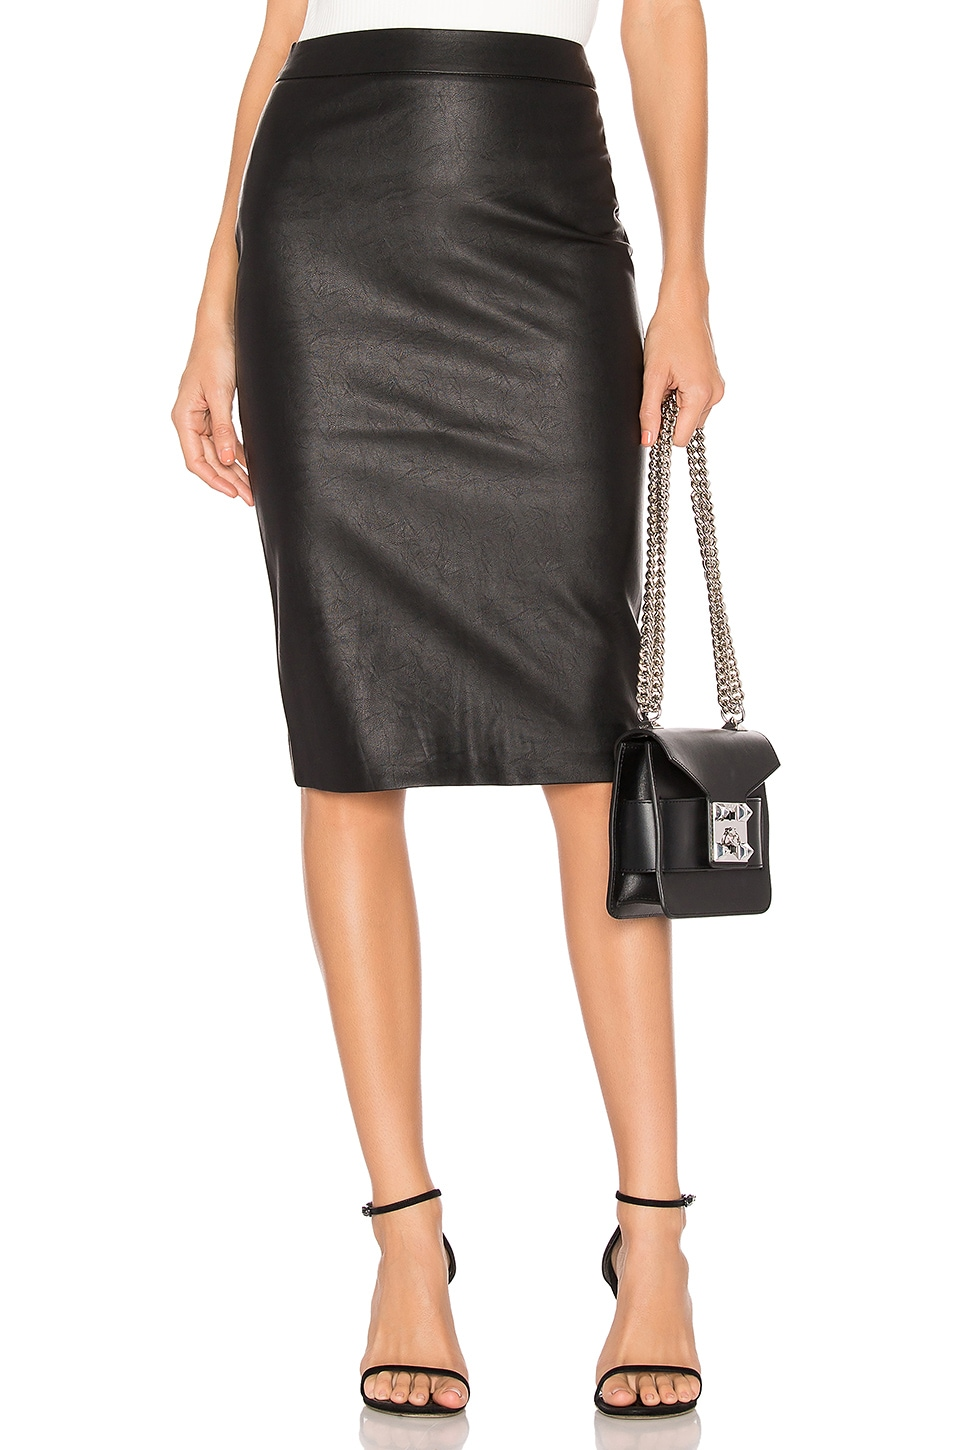 Bardot Donna Skirt in Black